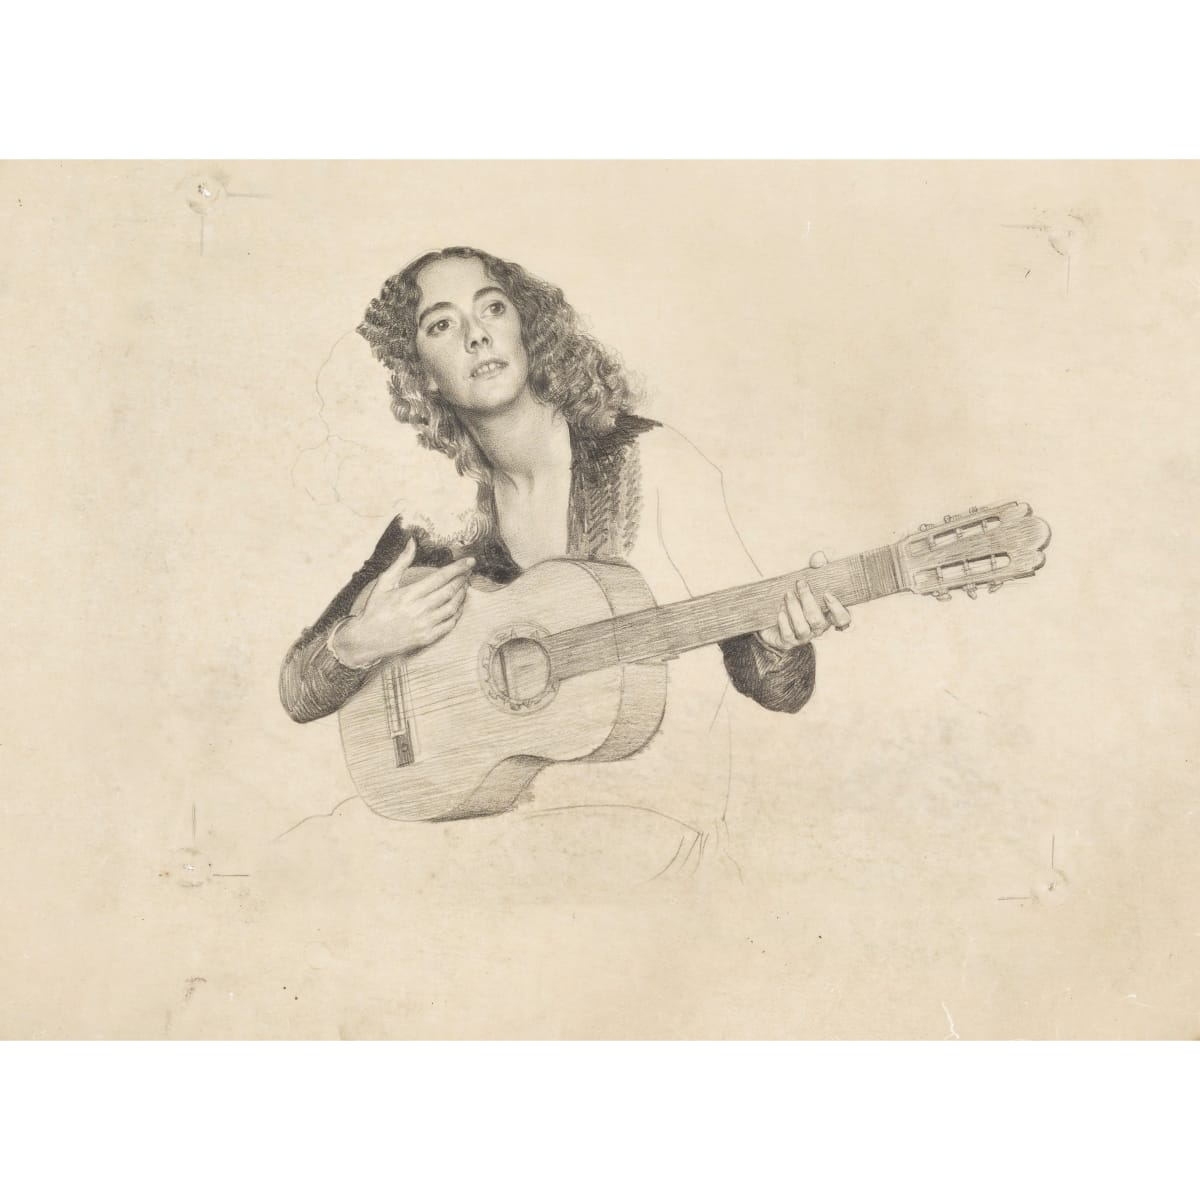 John Bulloch Souter Girl with Guitar pencil on buffer paper 14 1/2 x 20 inches